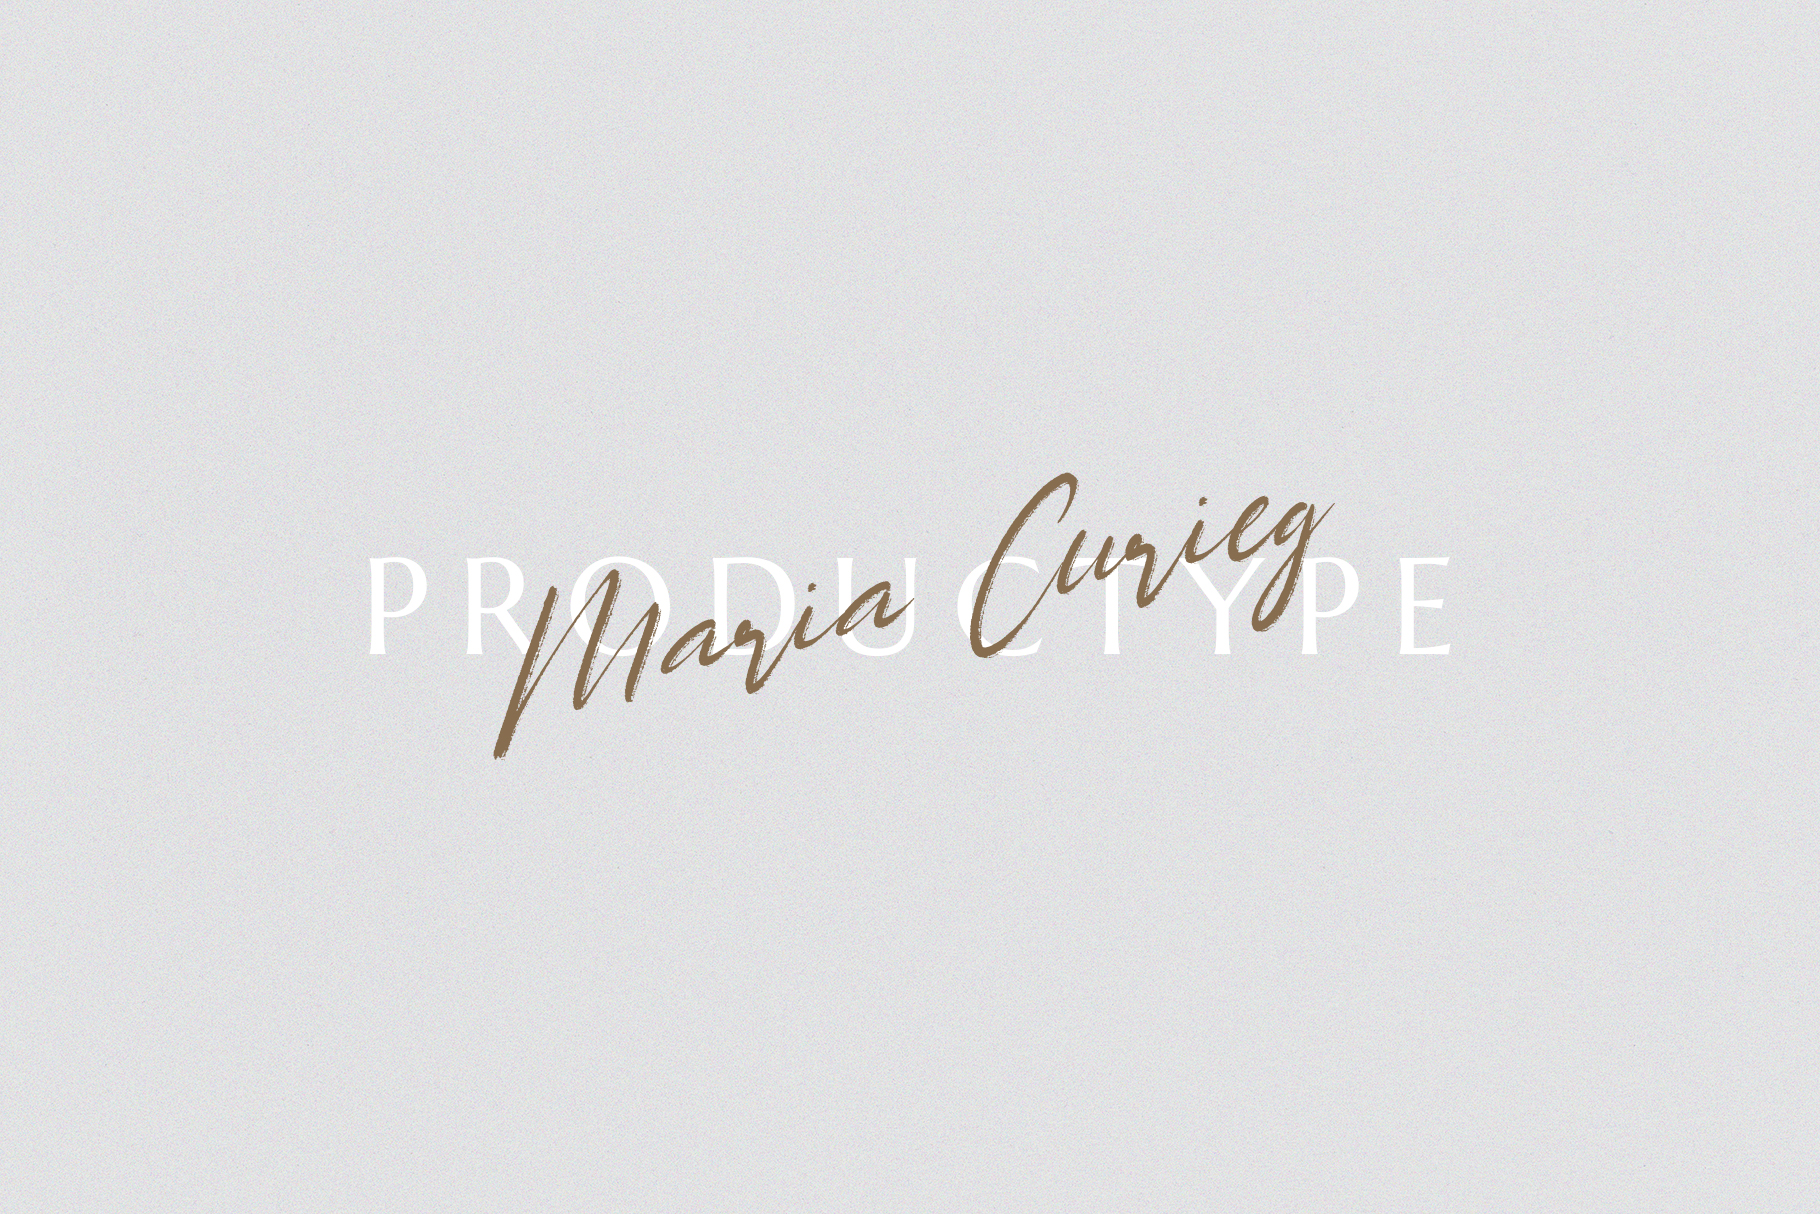 Maria Curieg Handwritten Brush Font example image 5